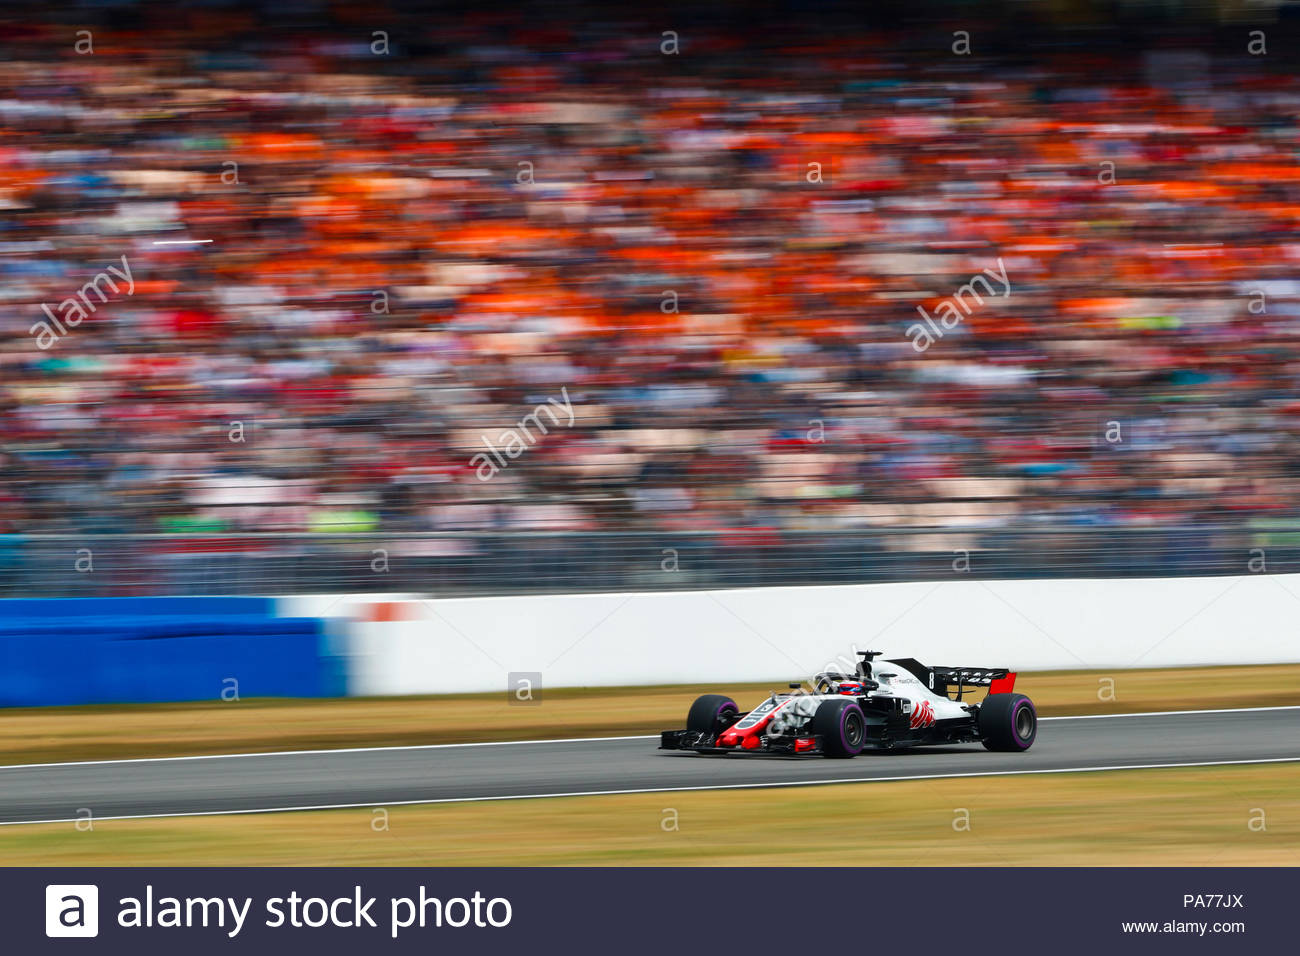 Vf 21 Stock Photos Amp Vf 21 Stock Images Alamy